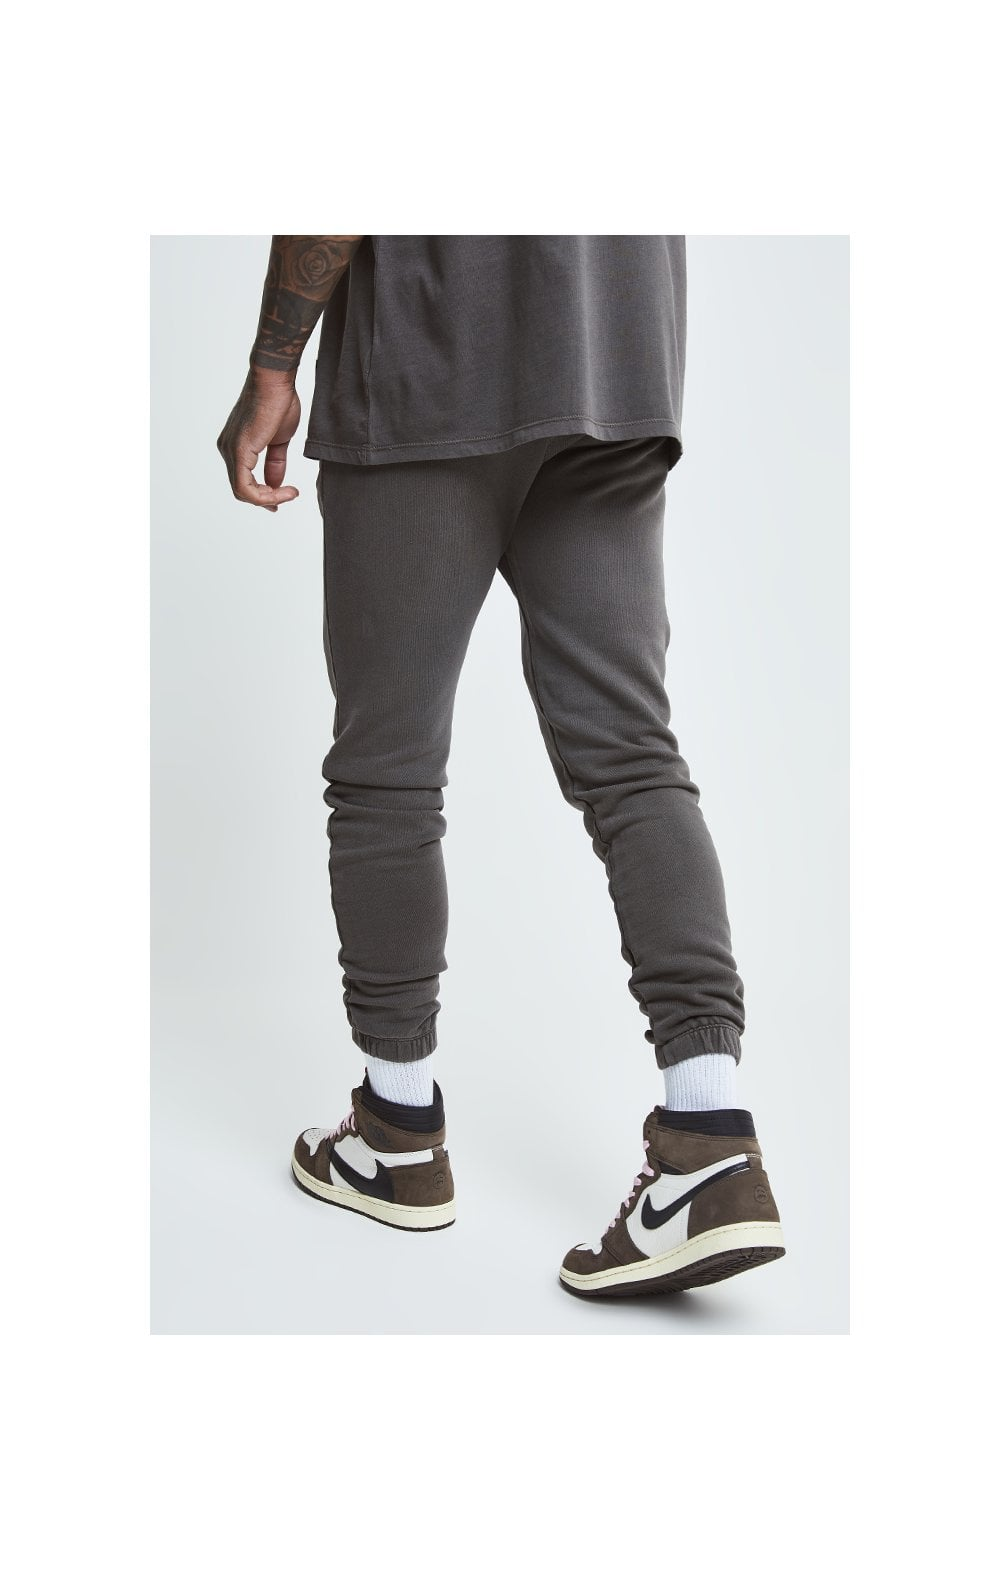 Load image into Gallery viewer, SikSilk X Steve Aoki Joggers - Washed Grey (1)